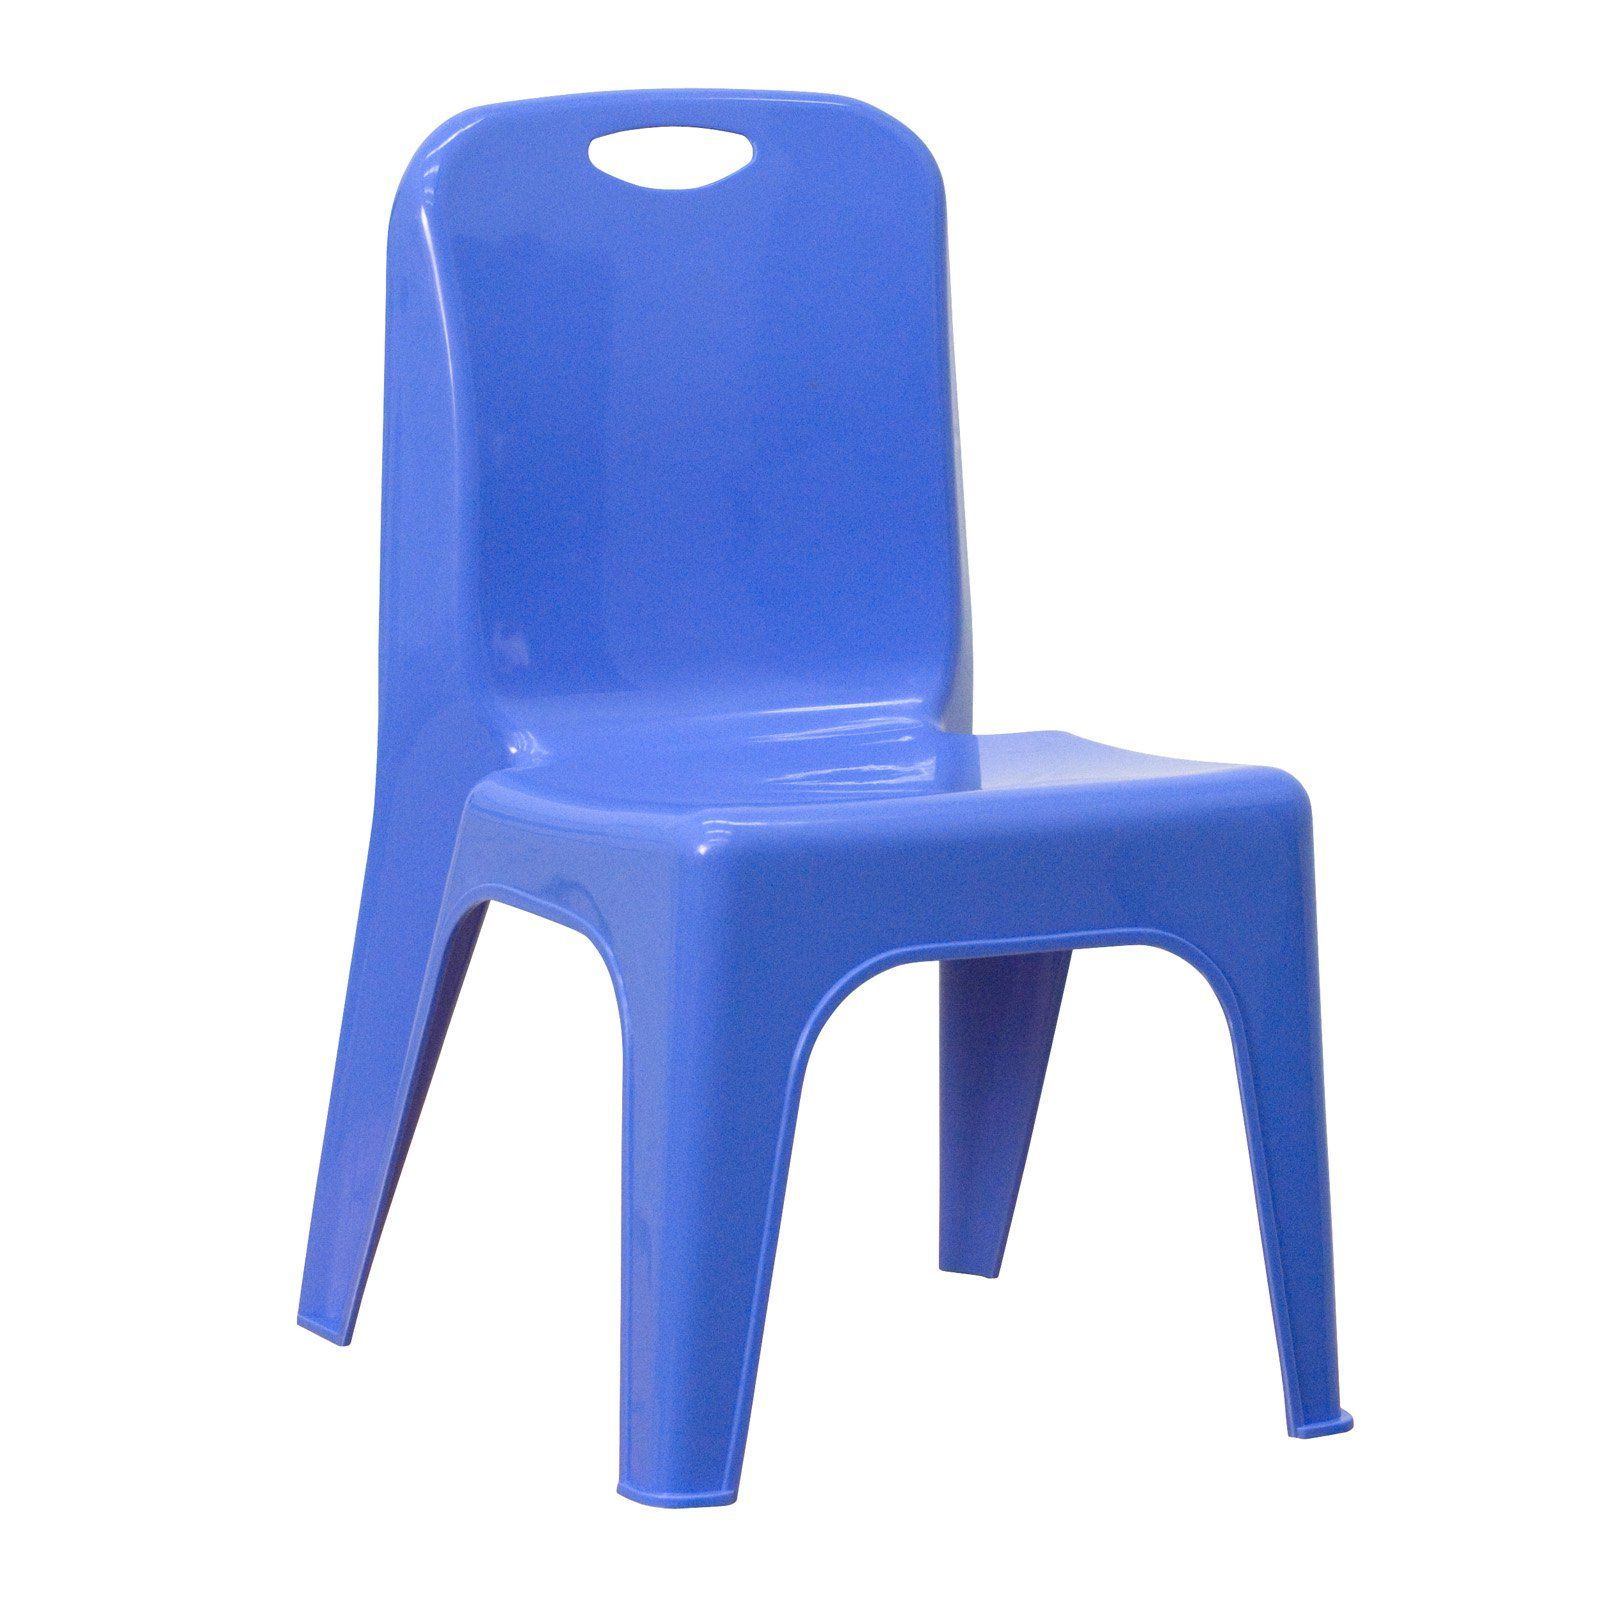 chair design with handle outdoor bean bag chairs sunbrella flash furniture plastic stackable school carrying and 11 seat height walmart com